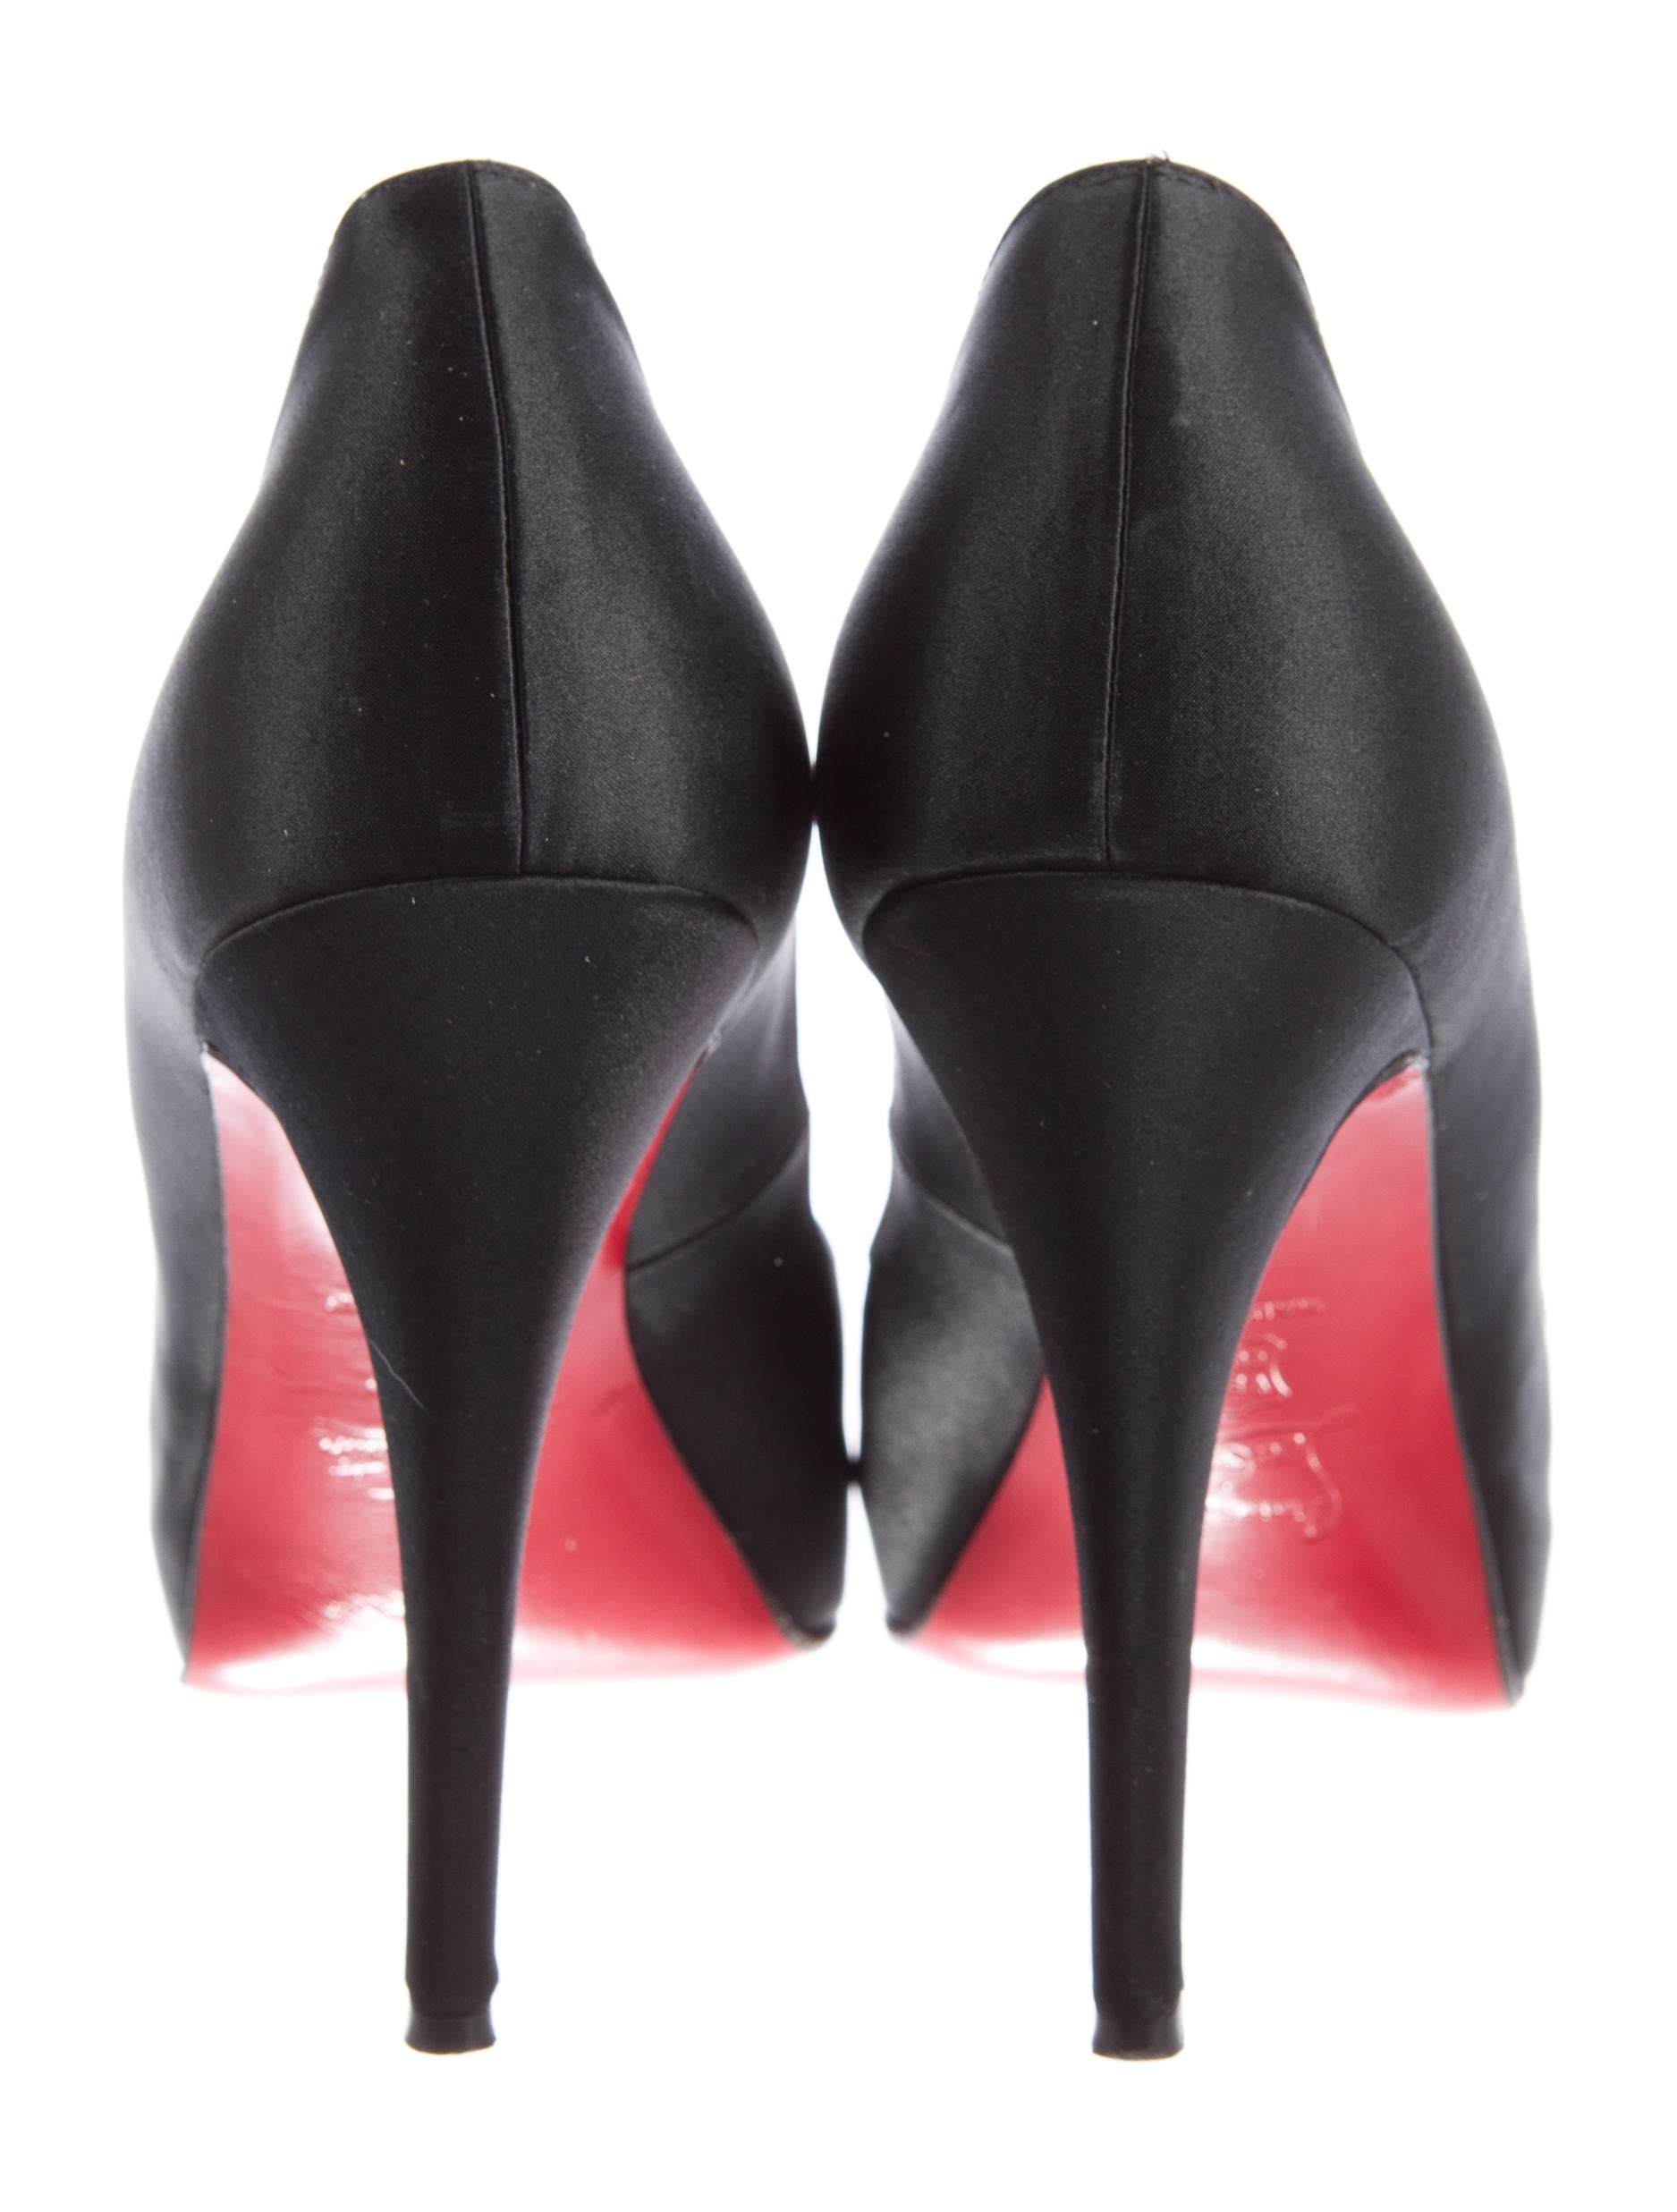 9534e89c563 Christian Louboutin 38 Black Heels With Red Soles | Law Lanka